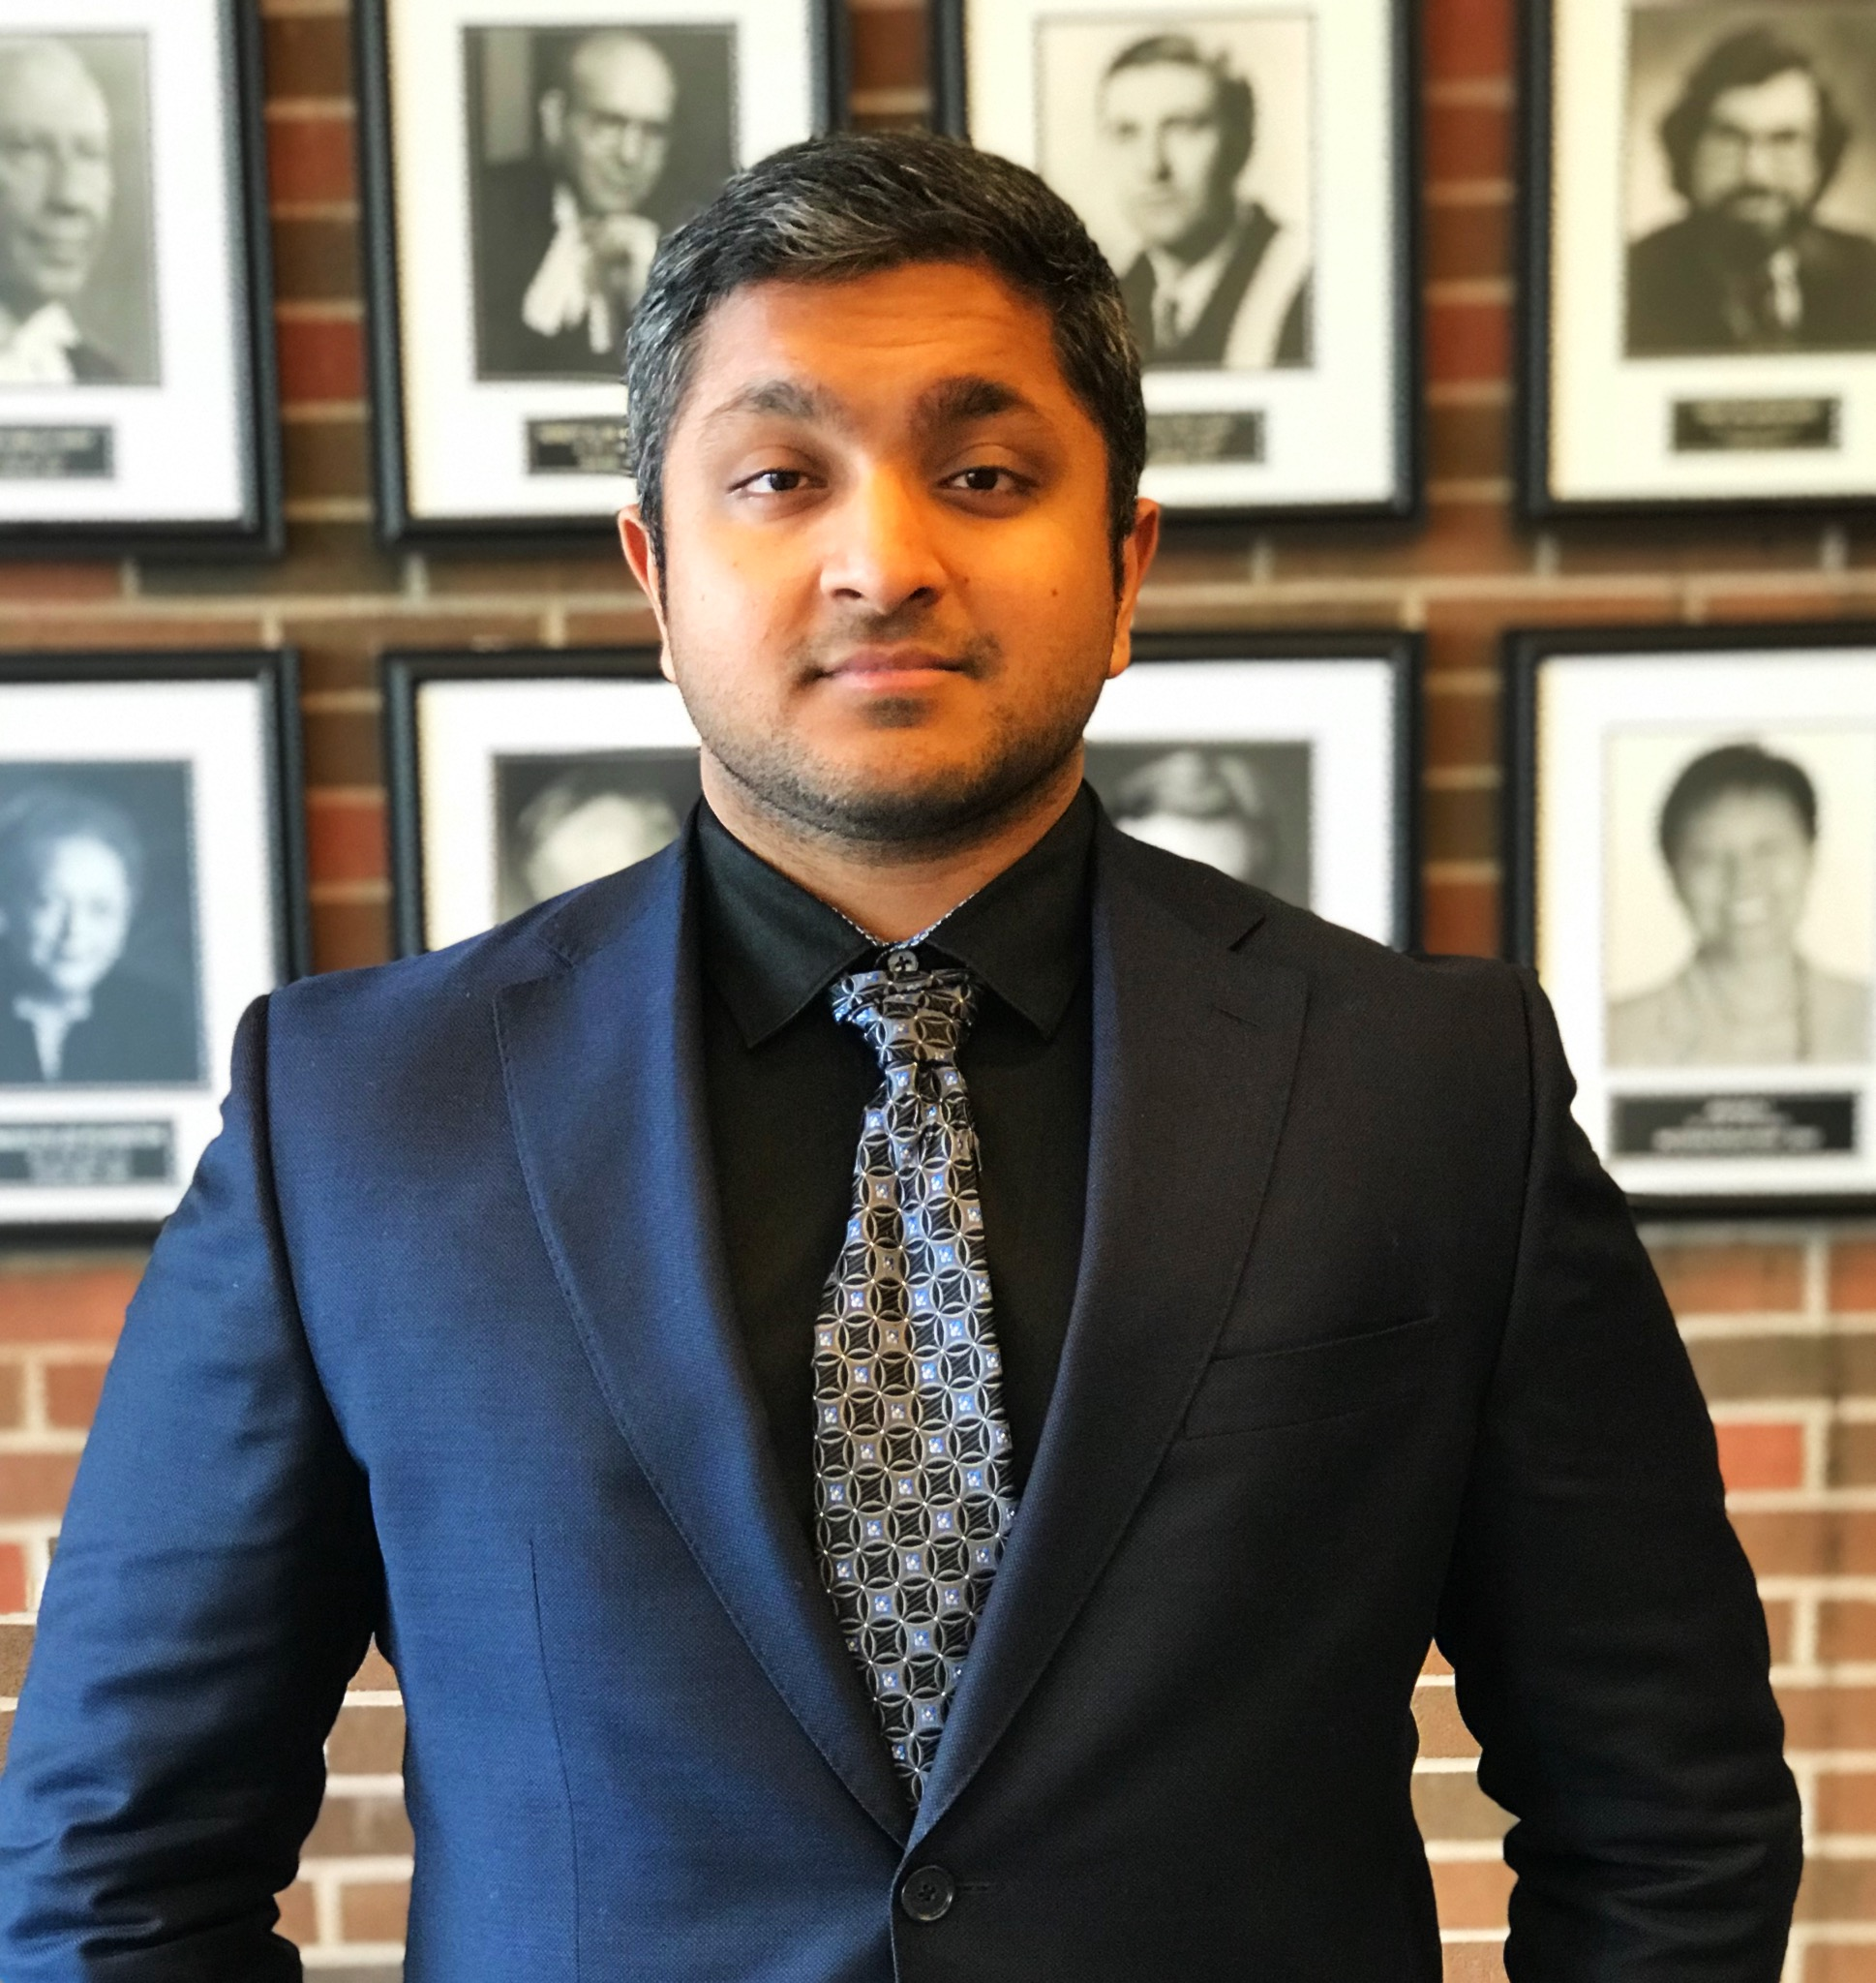 Photo of Program Coordinator Christopher Dias, in front of the Deans' Portraits at Osgoode